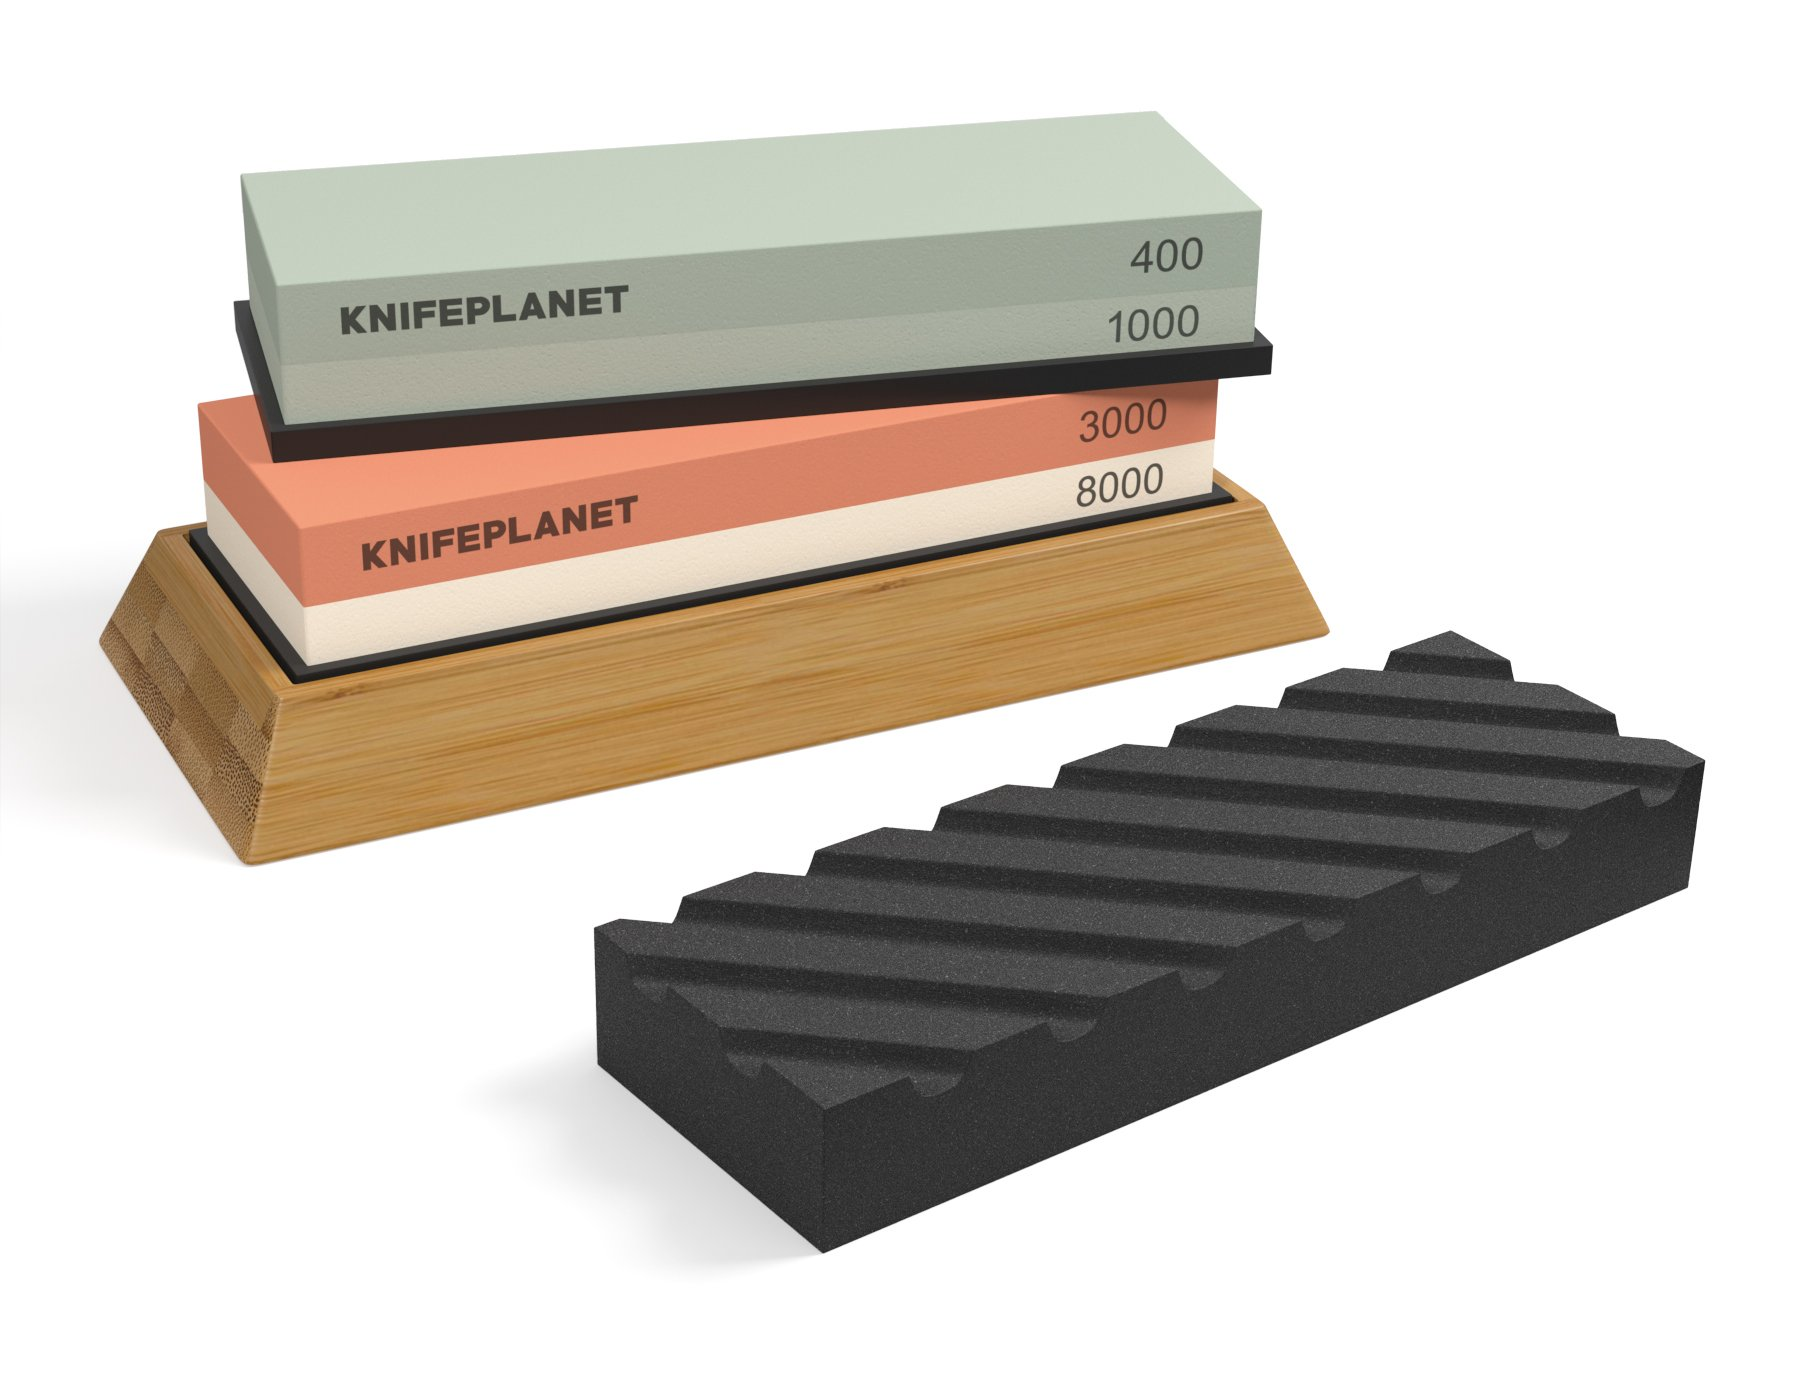 Complete Knife Sharpening Stone Set: 400/1000 Grit Water Stone, 3000/8000 Grit Water Stone, Bamboo Base and Online Sharpening Learning Material